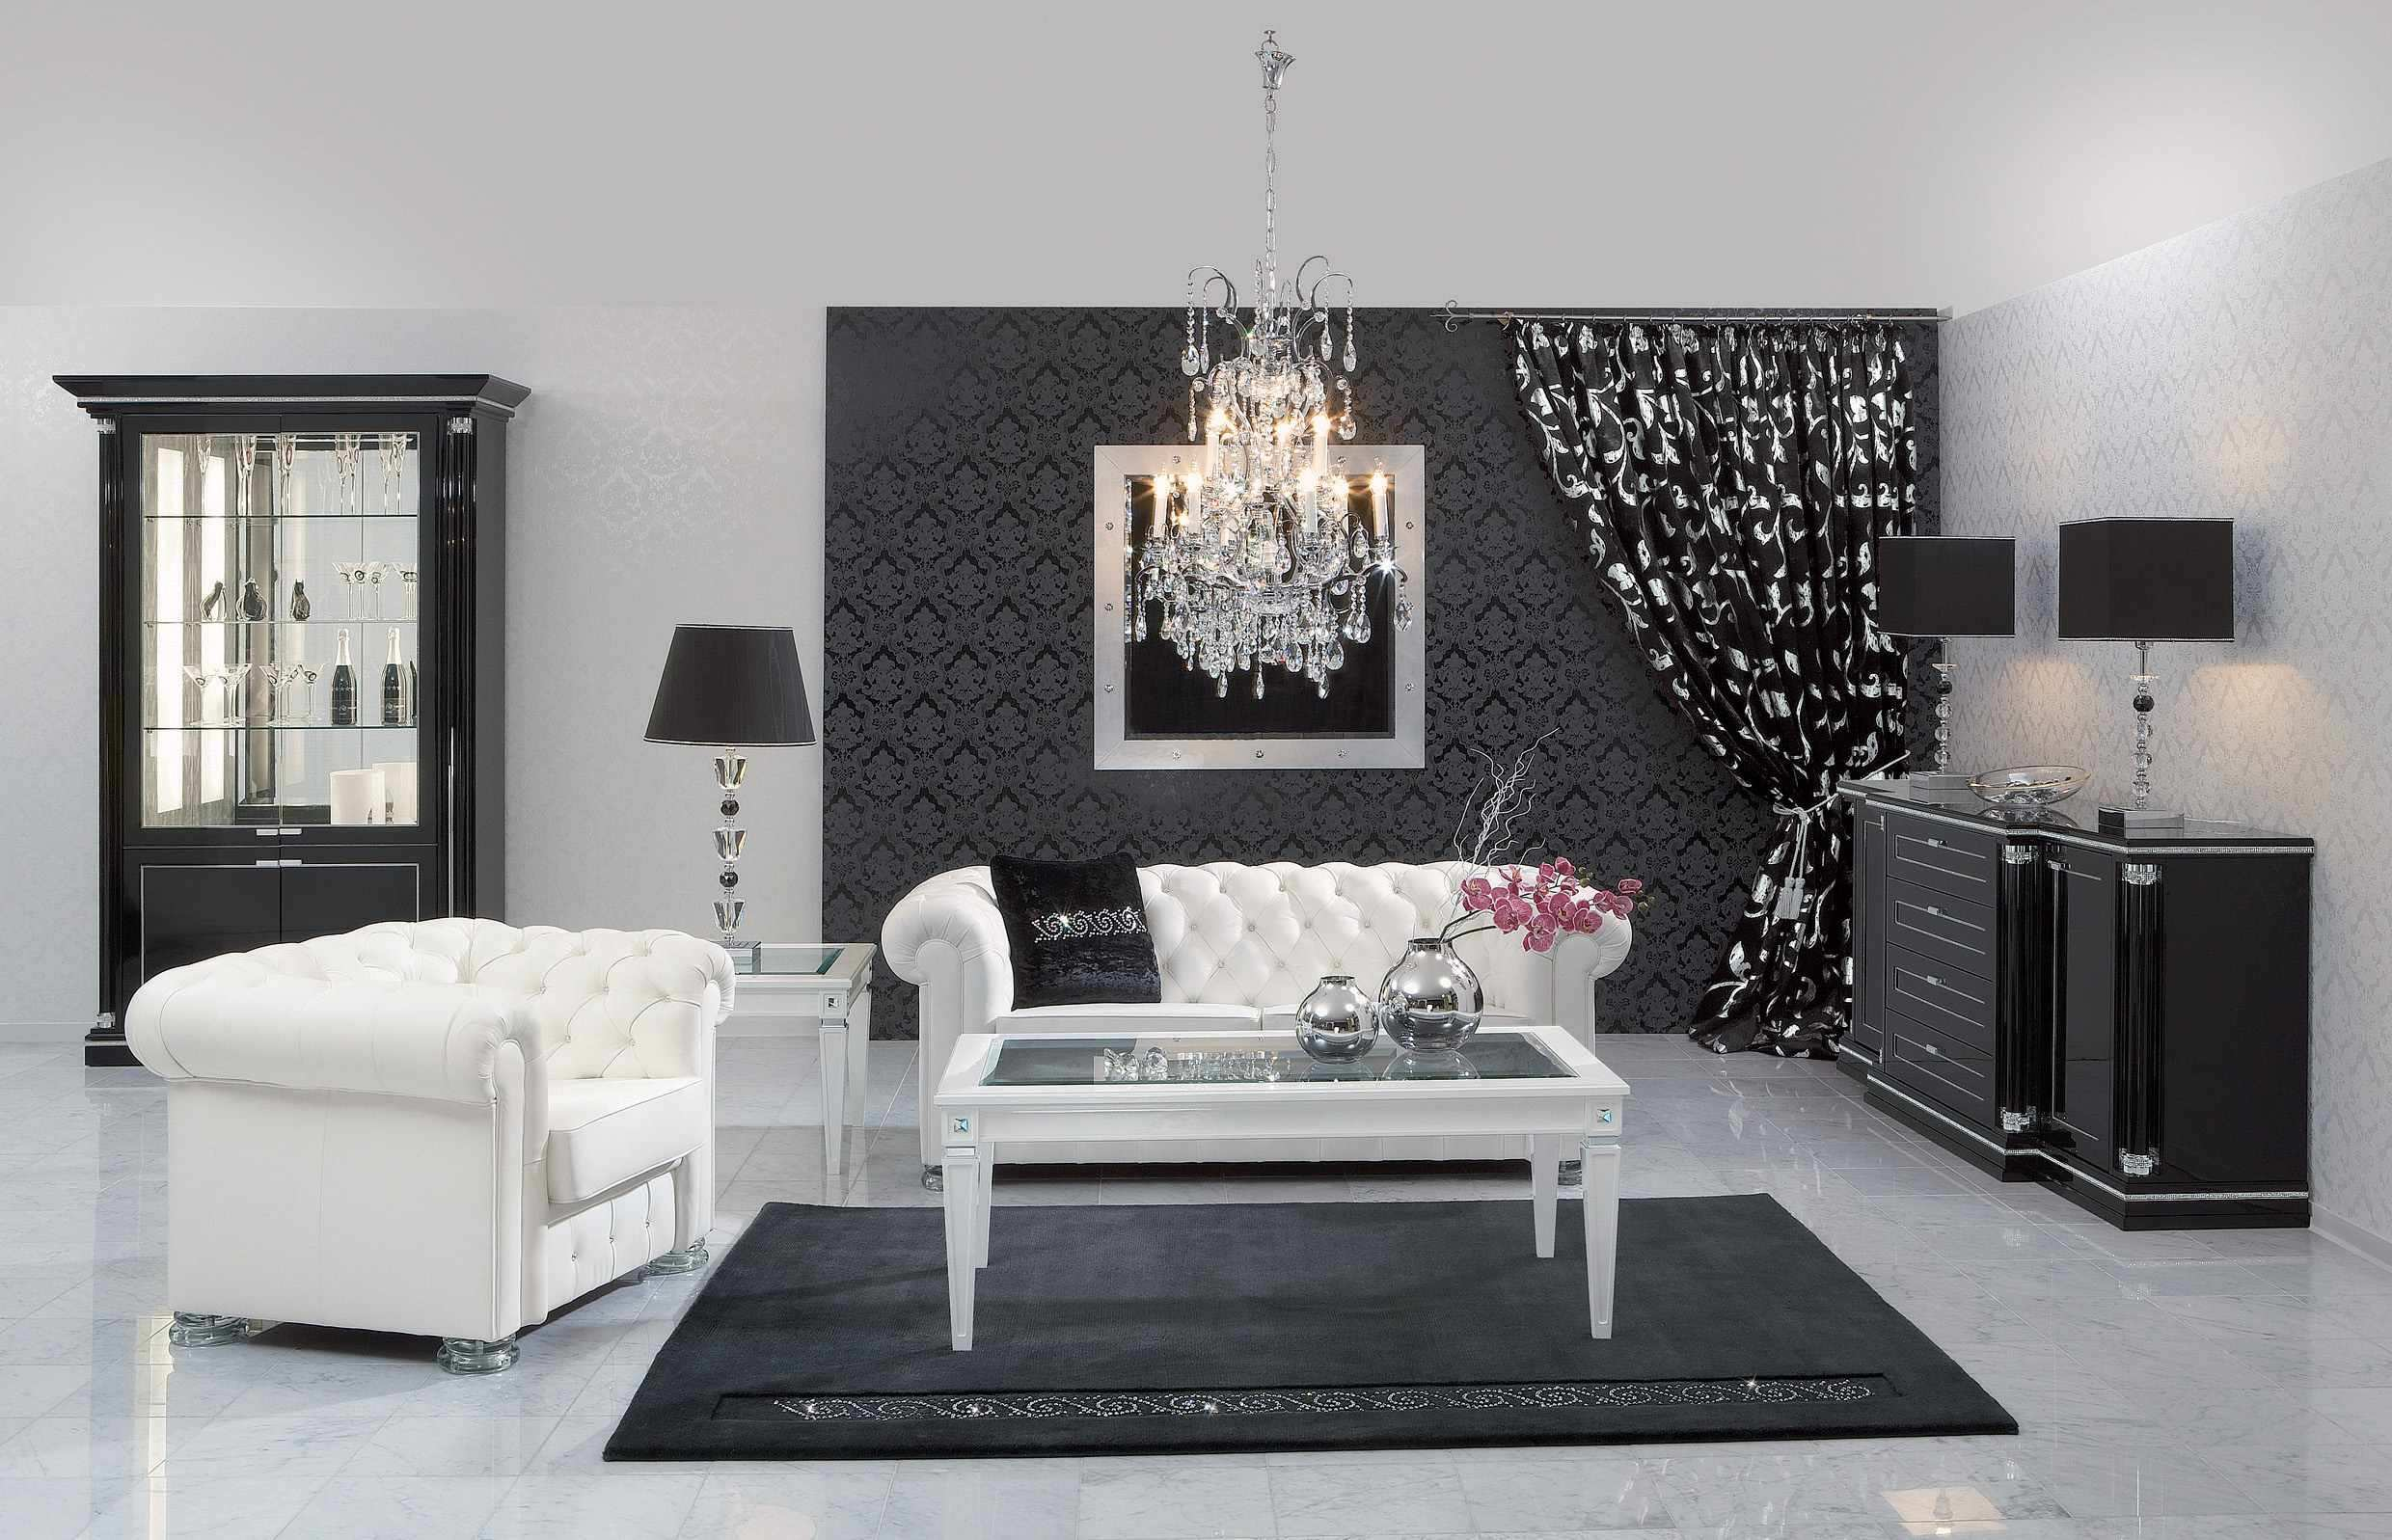 Furniture Design For Living Room black living room decor best 25+ black living rooms ideas on